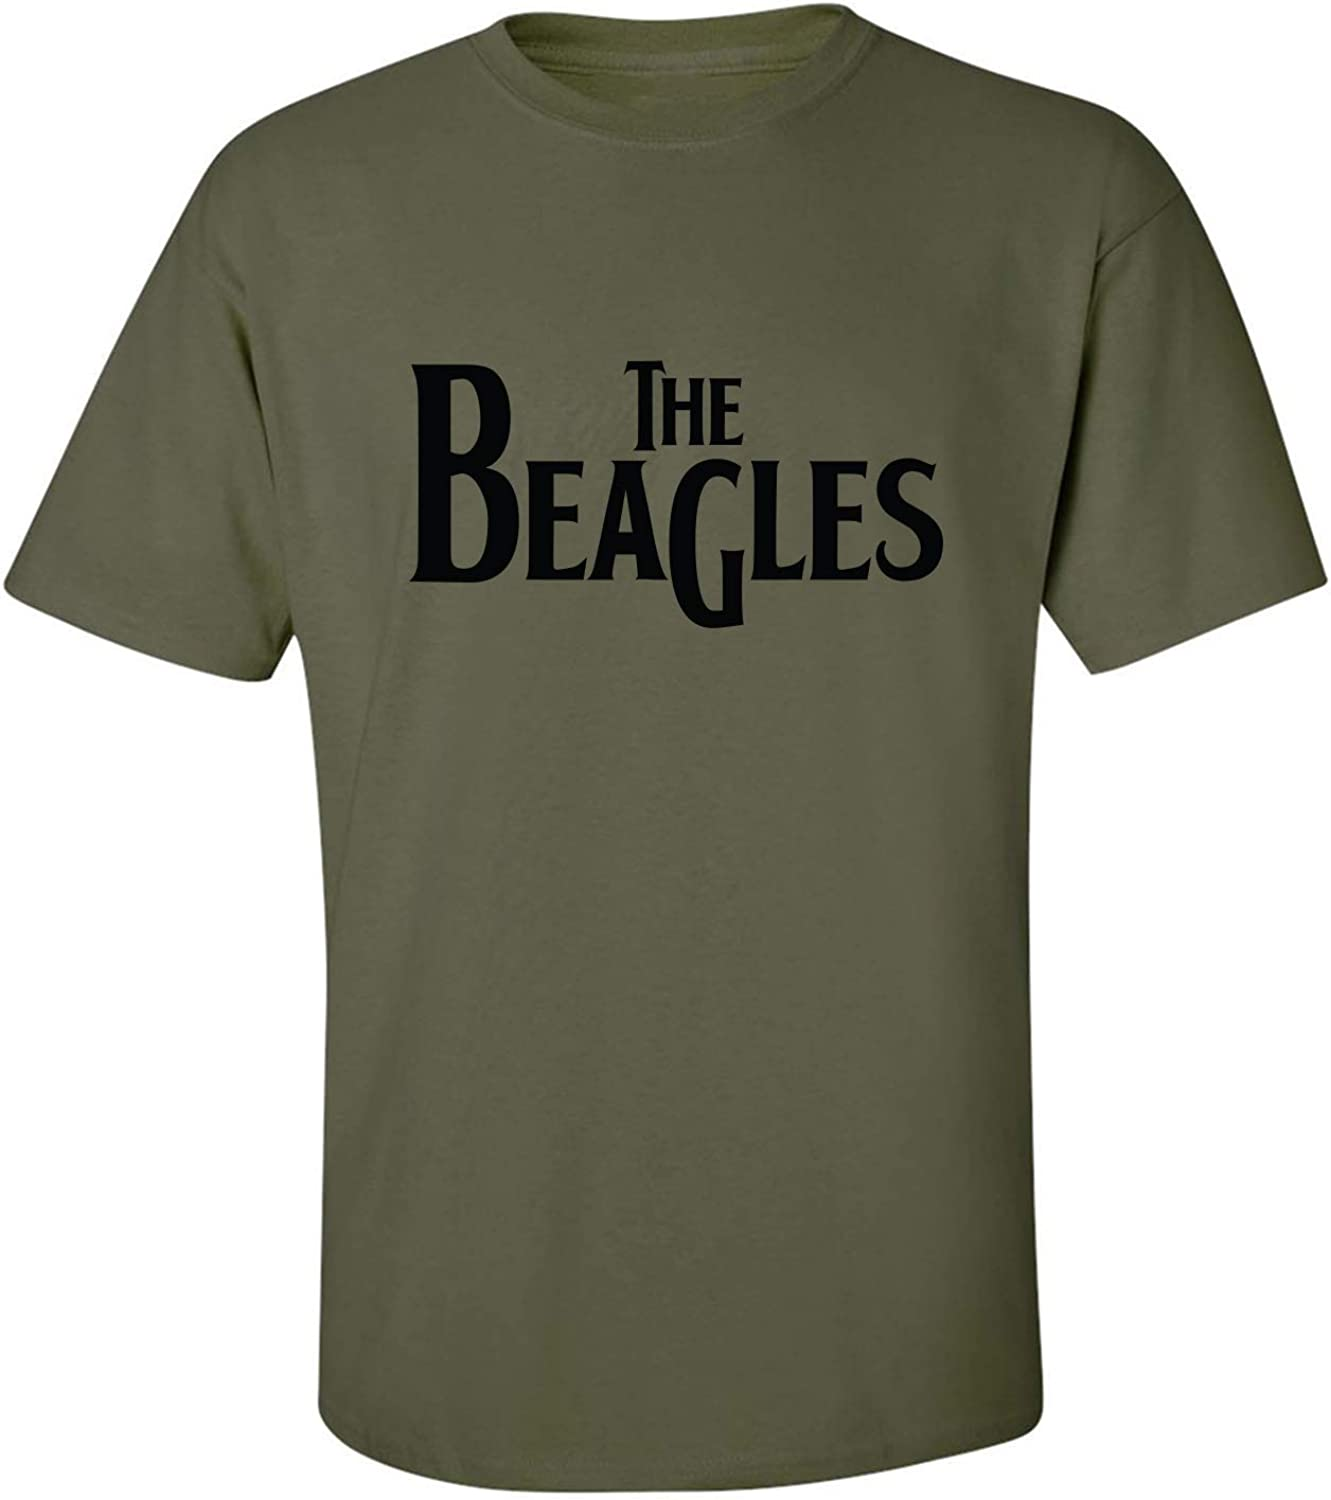 The Beagles Adult T-Shirt in Military Green - XXXX-Large